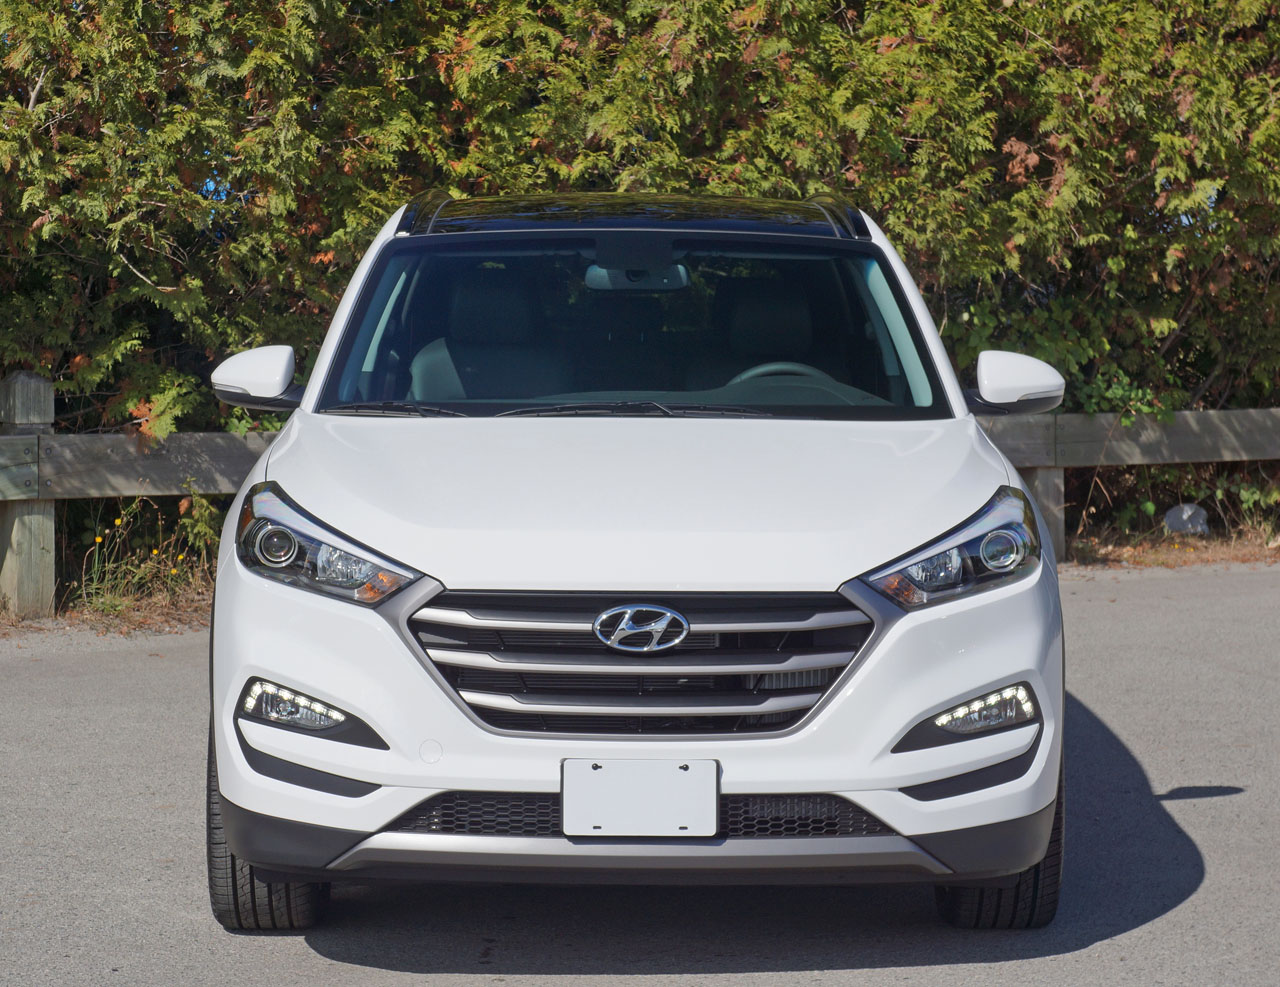 2016 hyundai tucson 1 6t limited awd road test review carcostcanada. Black Bedroom Furniture Sets. Home Design Ideas